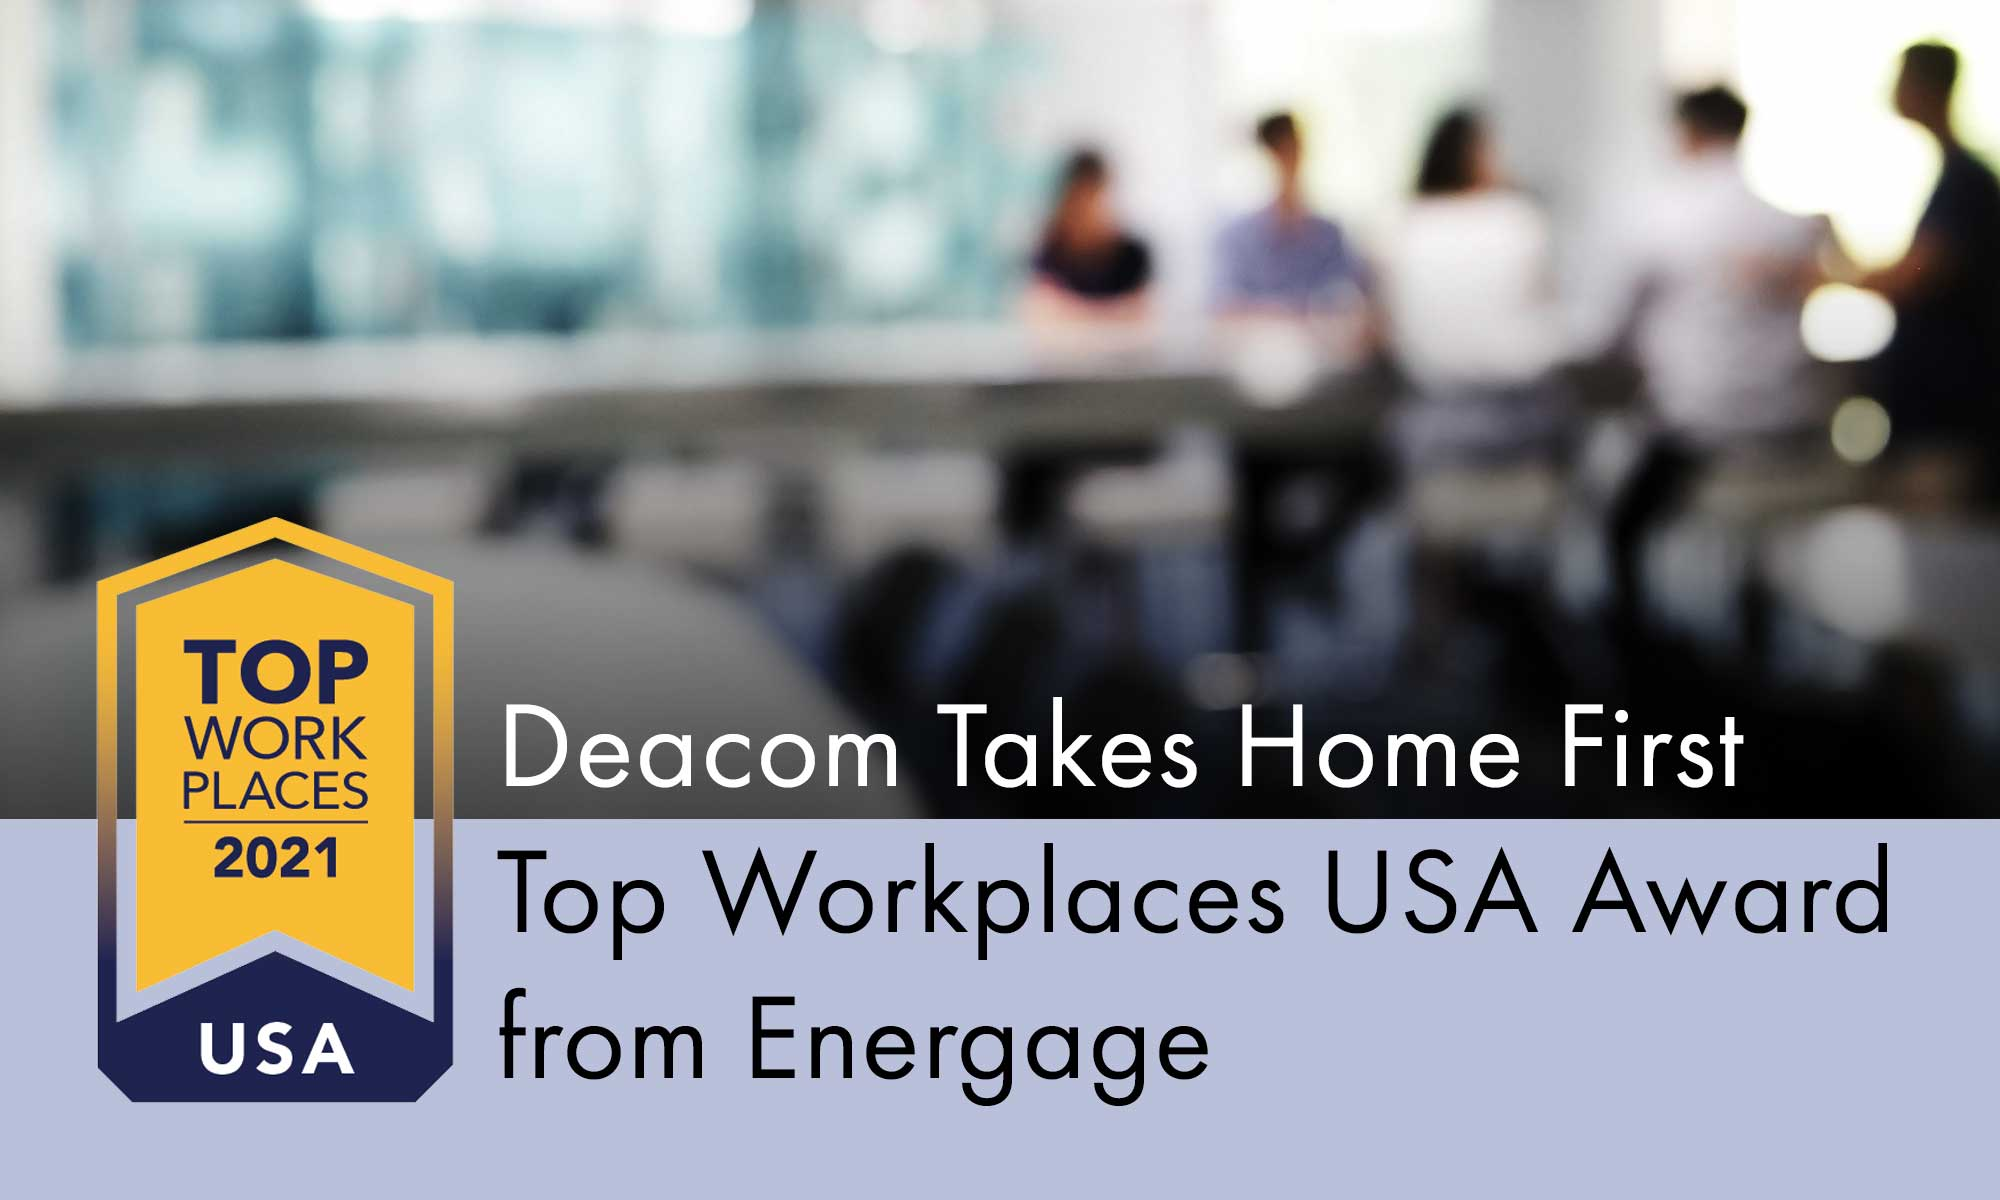 Deacom Takes Home First Top Workplaces USA Award from Energage